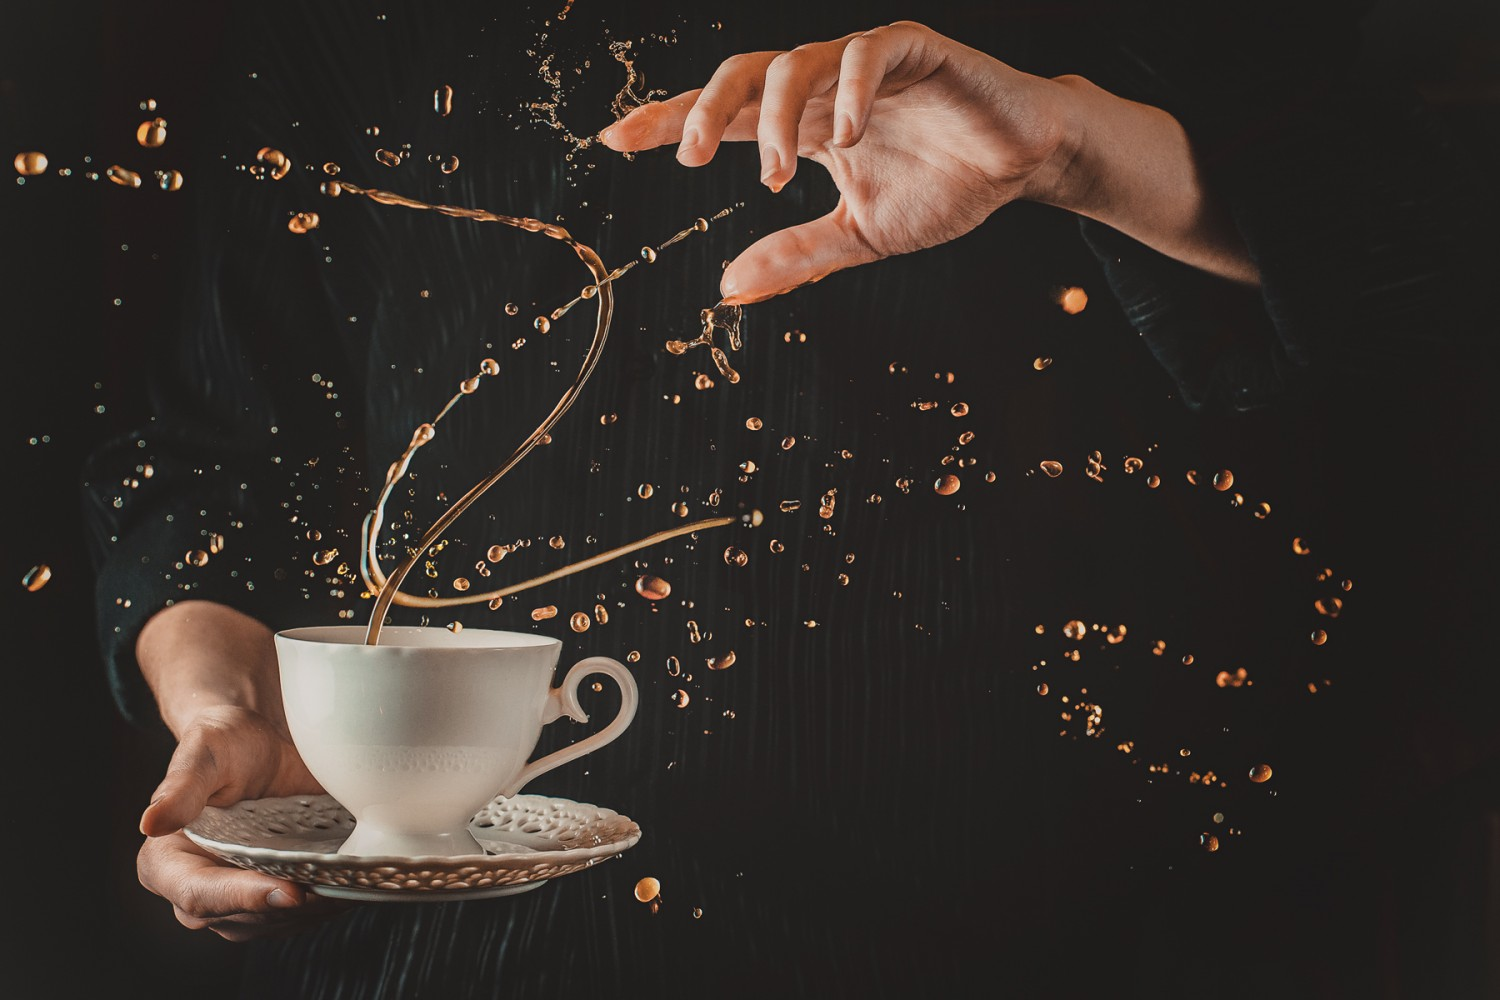 Defying Gravity: How to Shoot 'Twisted' Coffee Splashes